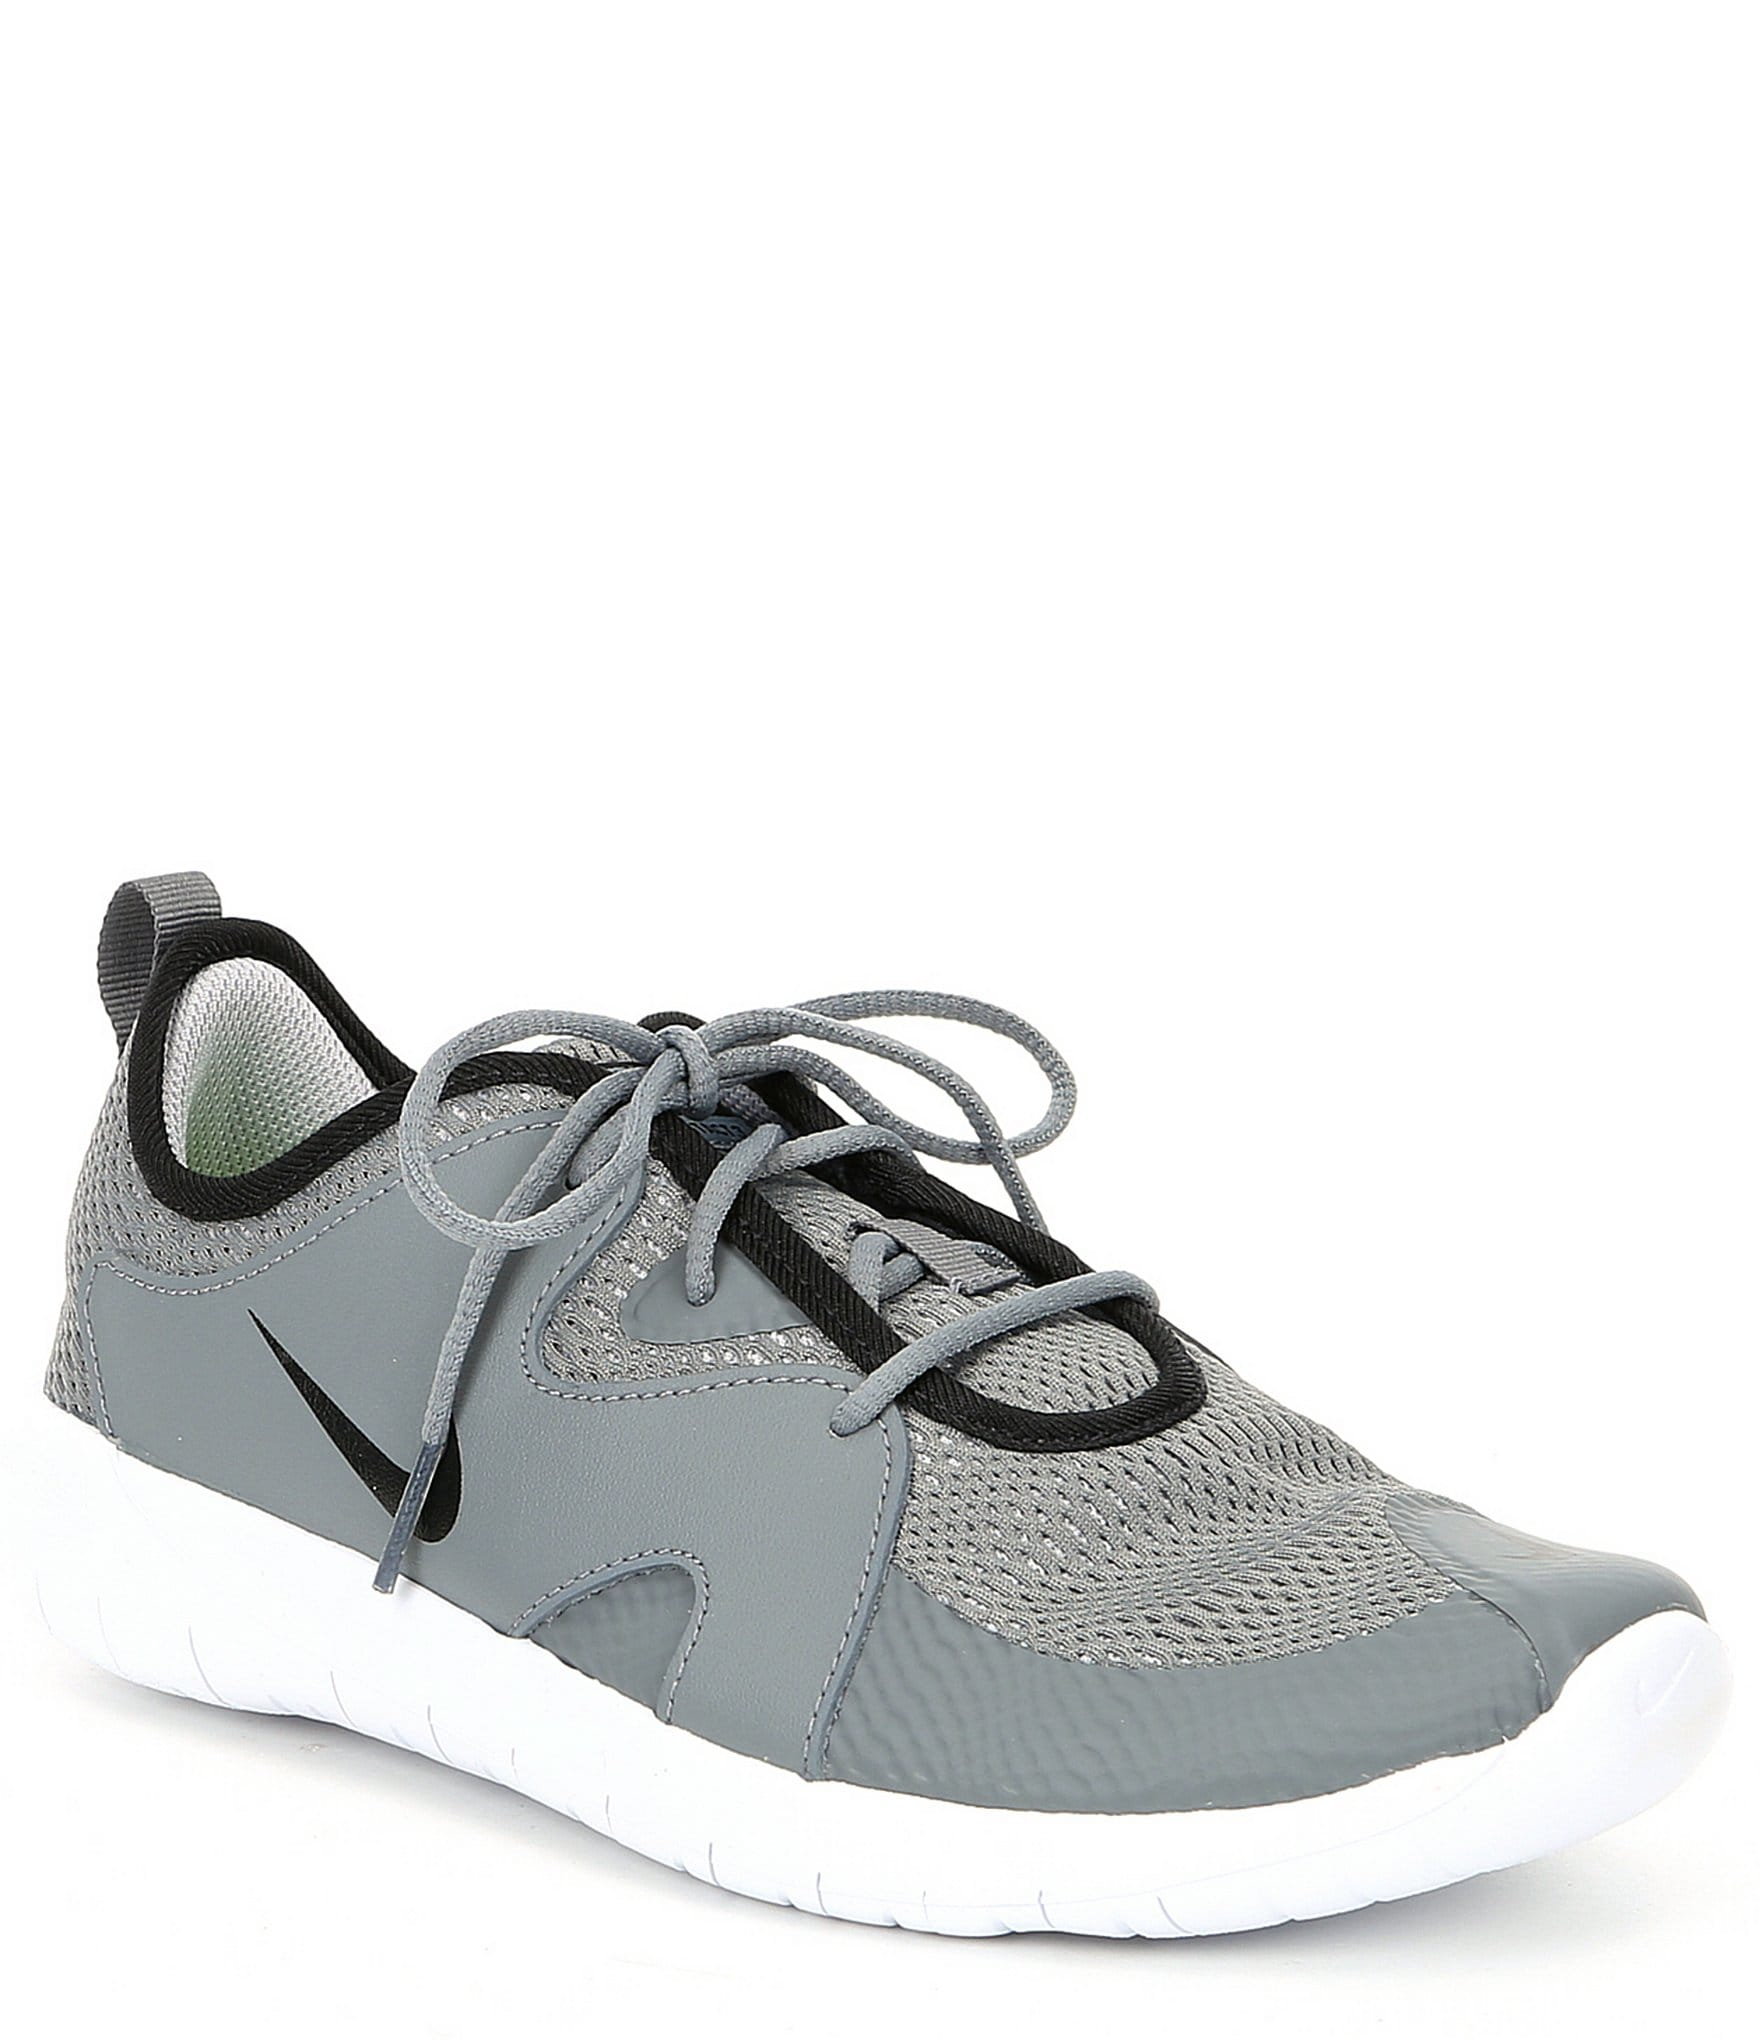 224b10a9fd37d Nike Boys' Flex Contact 3 GS Running Shoe